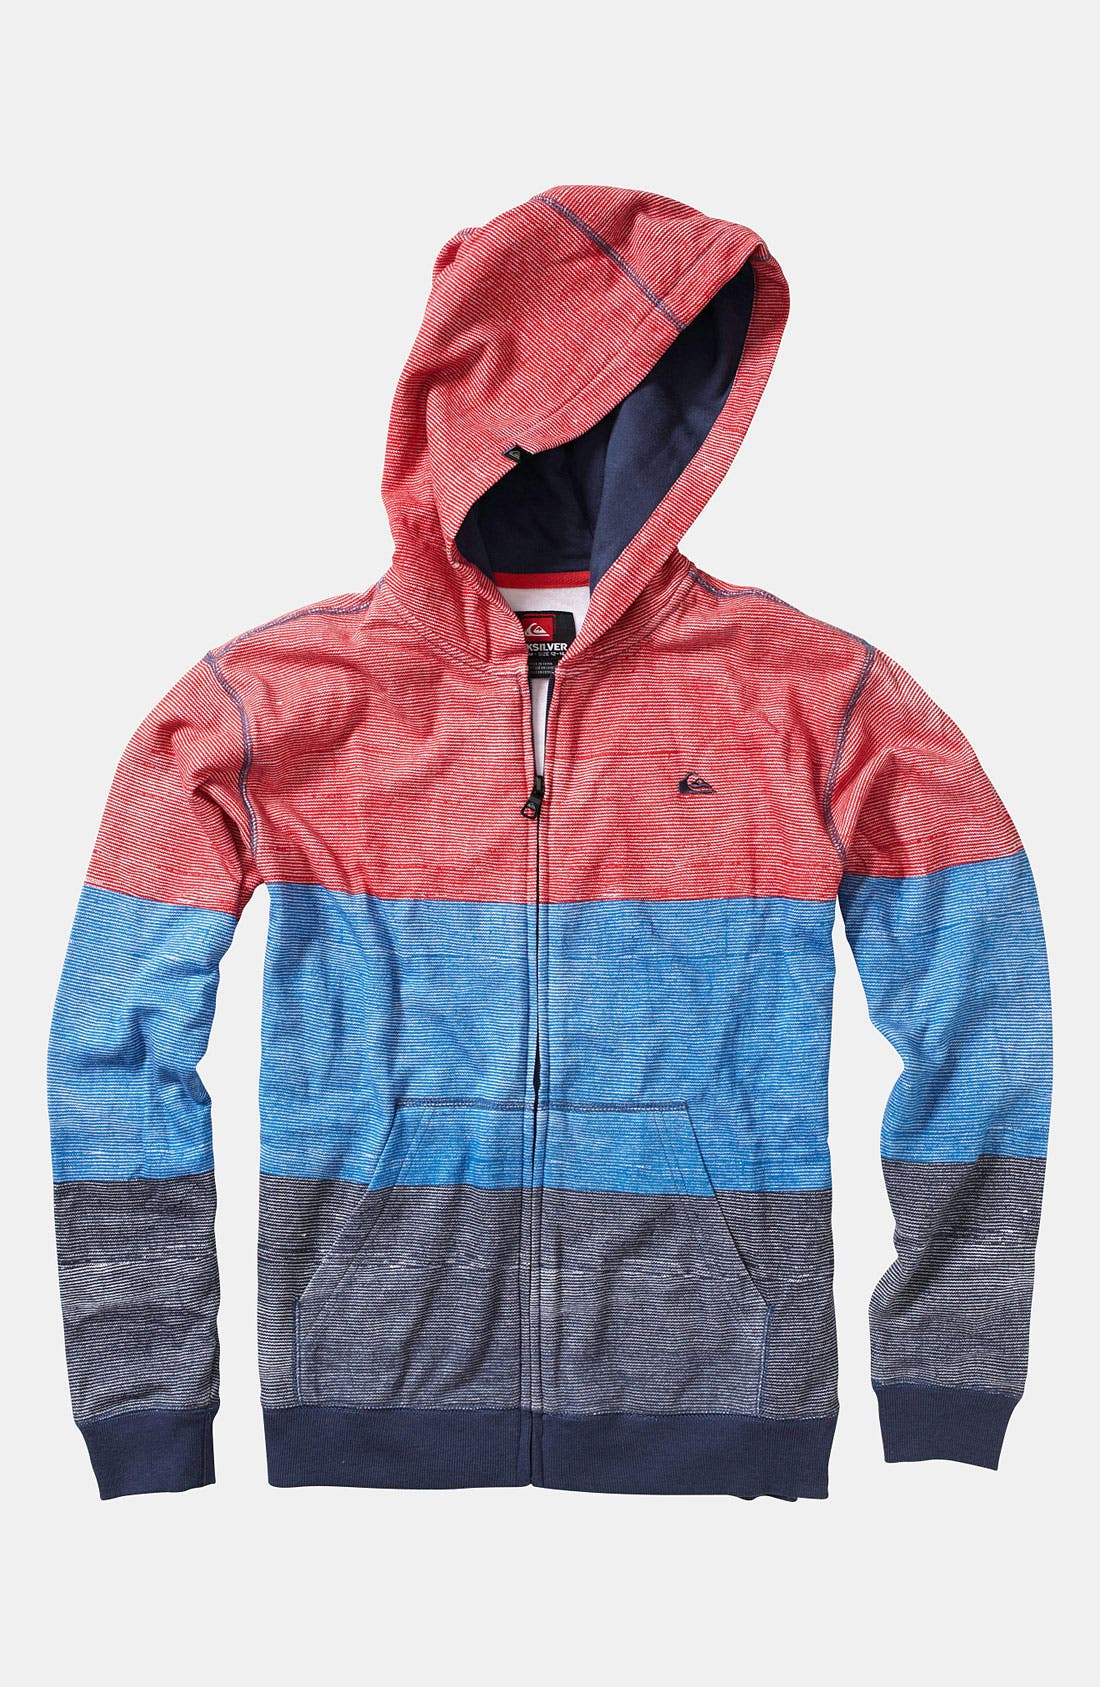 Main Image - Quiksilver 'Suave 2' Hoodie (Toddler)